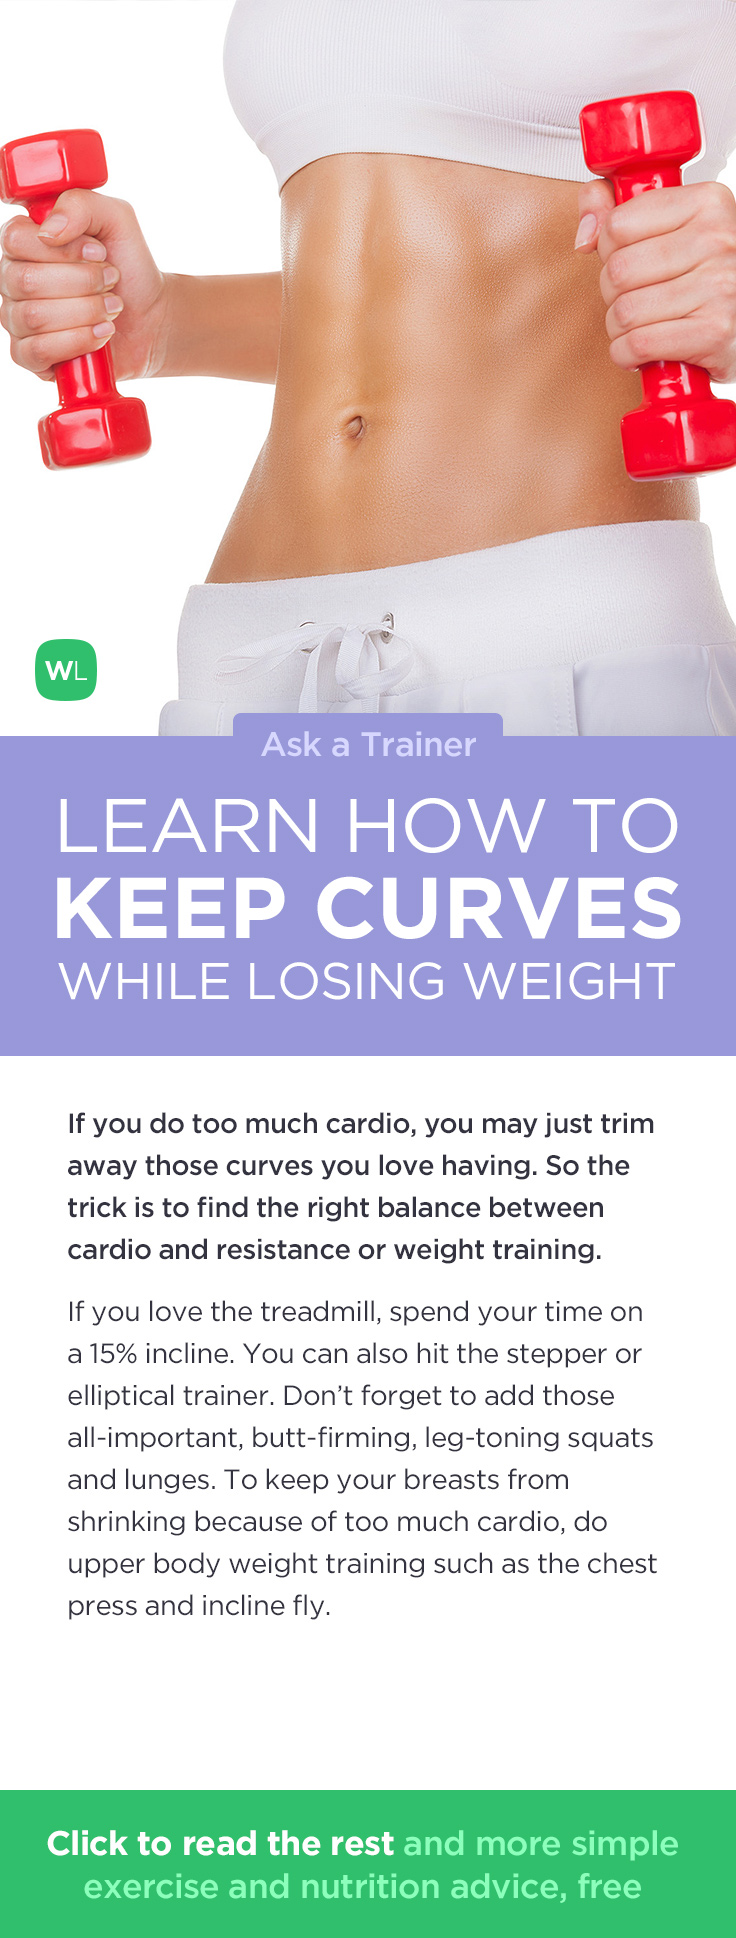 Will I lose my curves if I work out excessively to shed belly fat? Visit https://wlabs.me/1nMqiyg to find out!